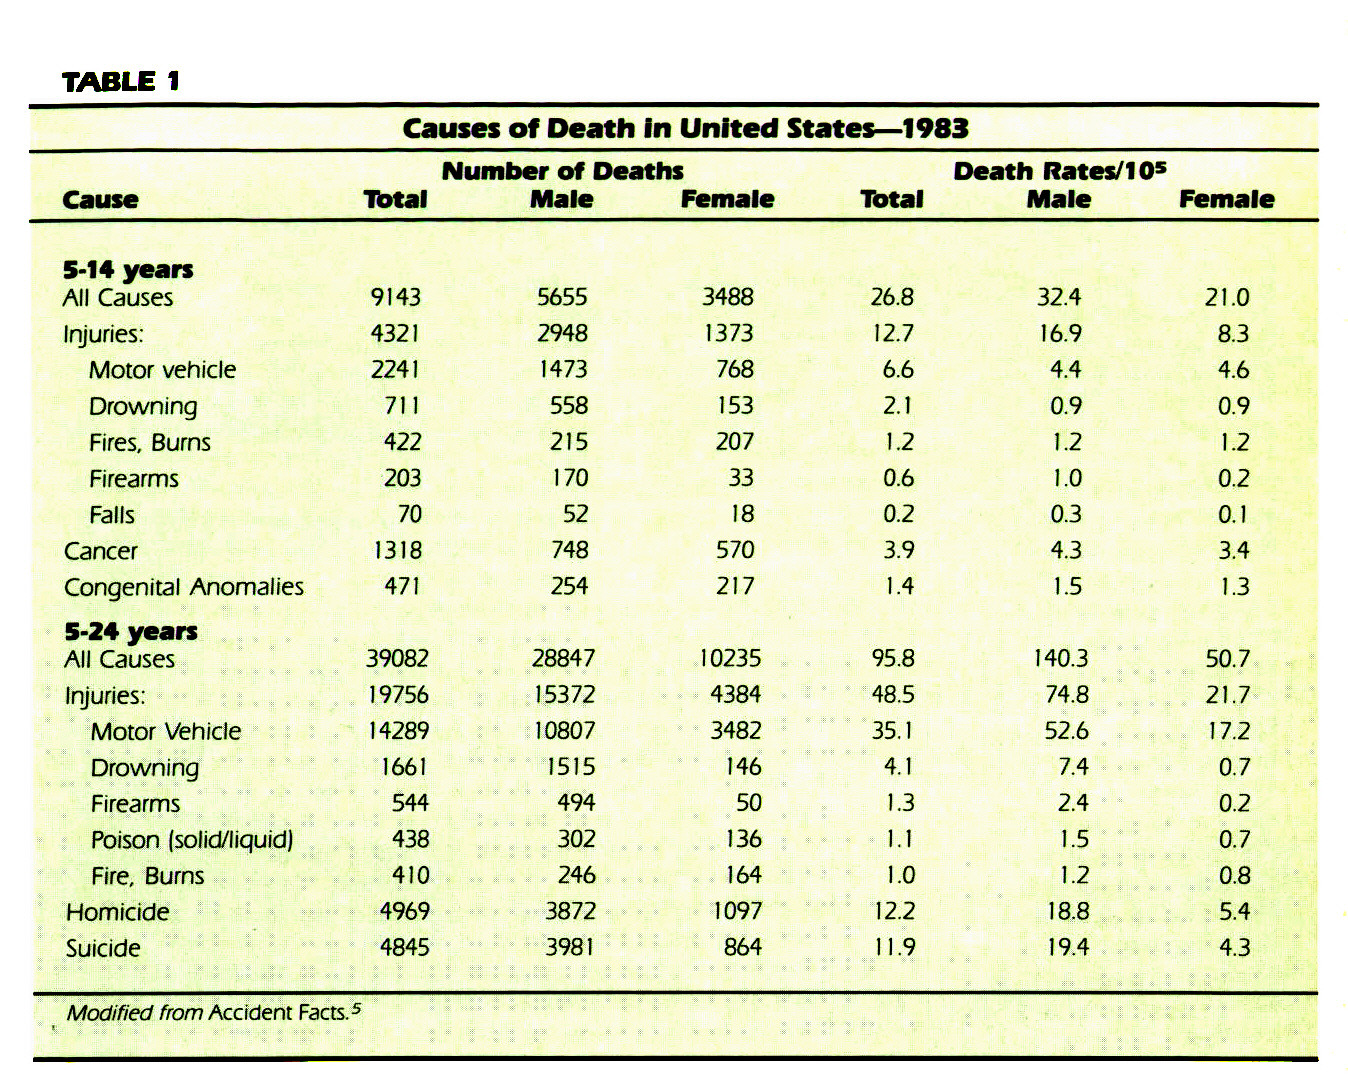 TABLE 1Causes of Death In United States- 1983